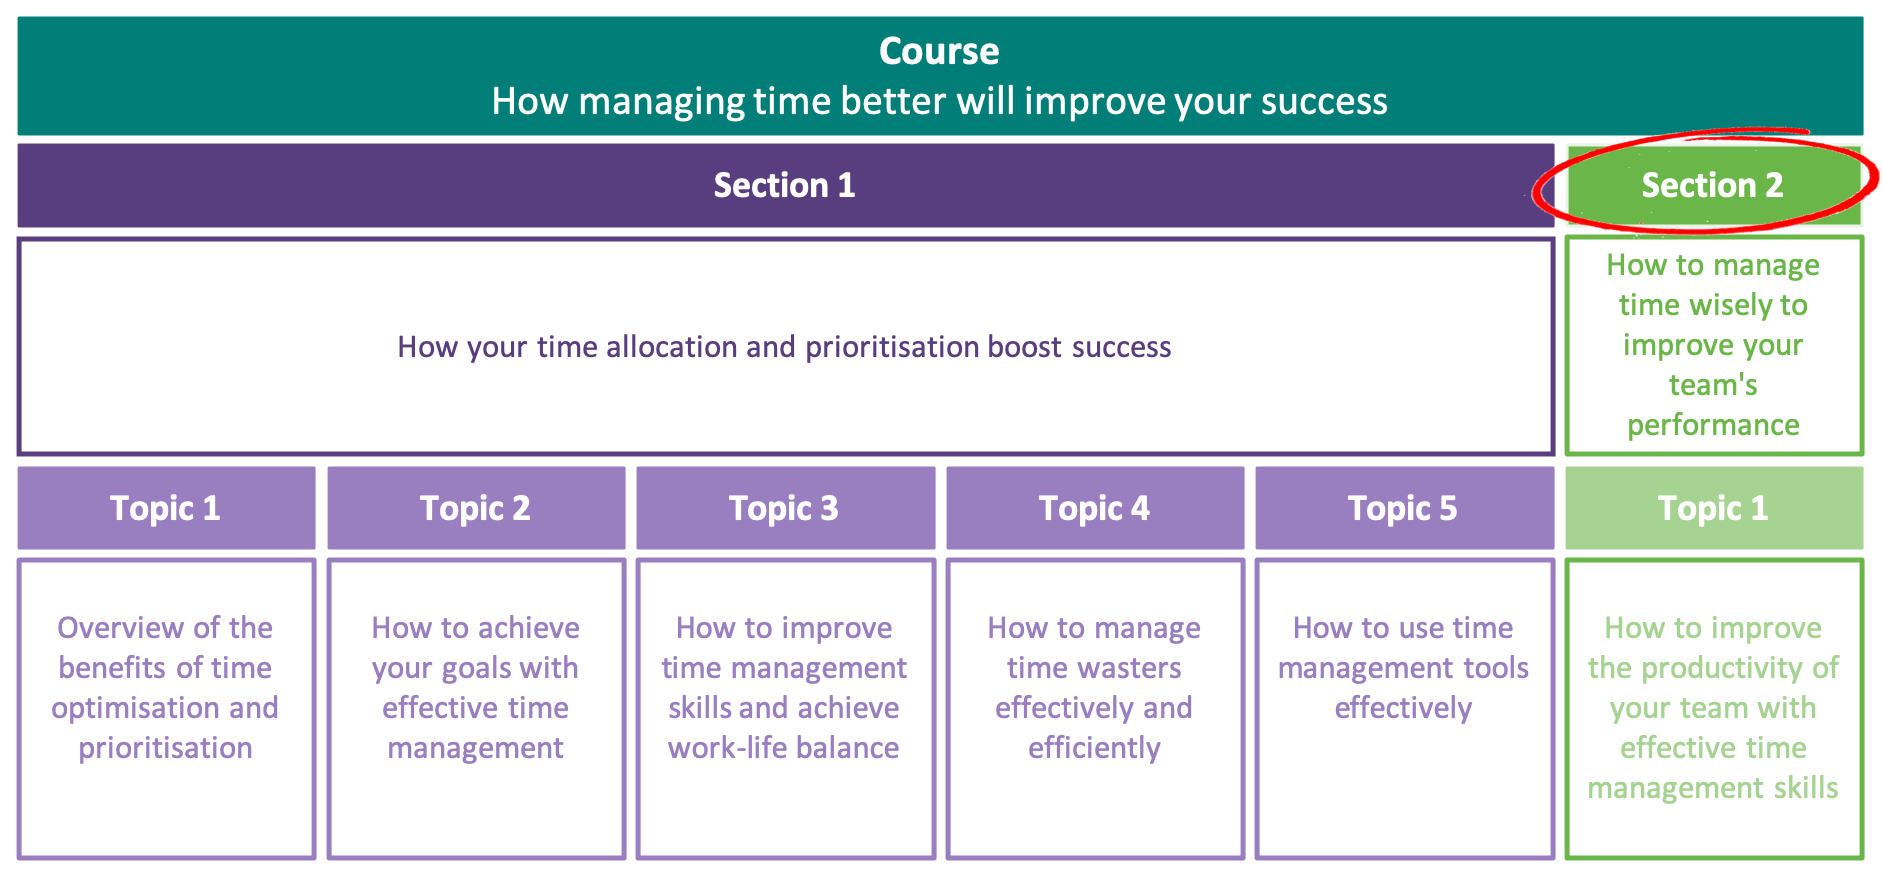 How to manage time wisely to improve your team's performance